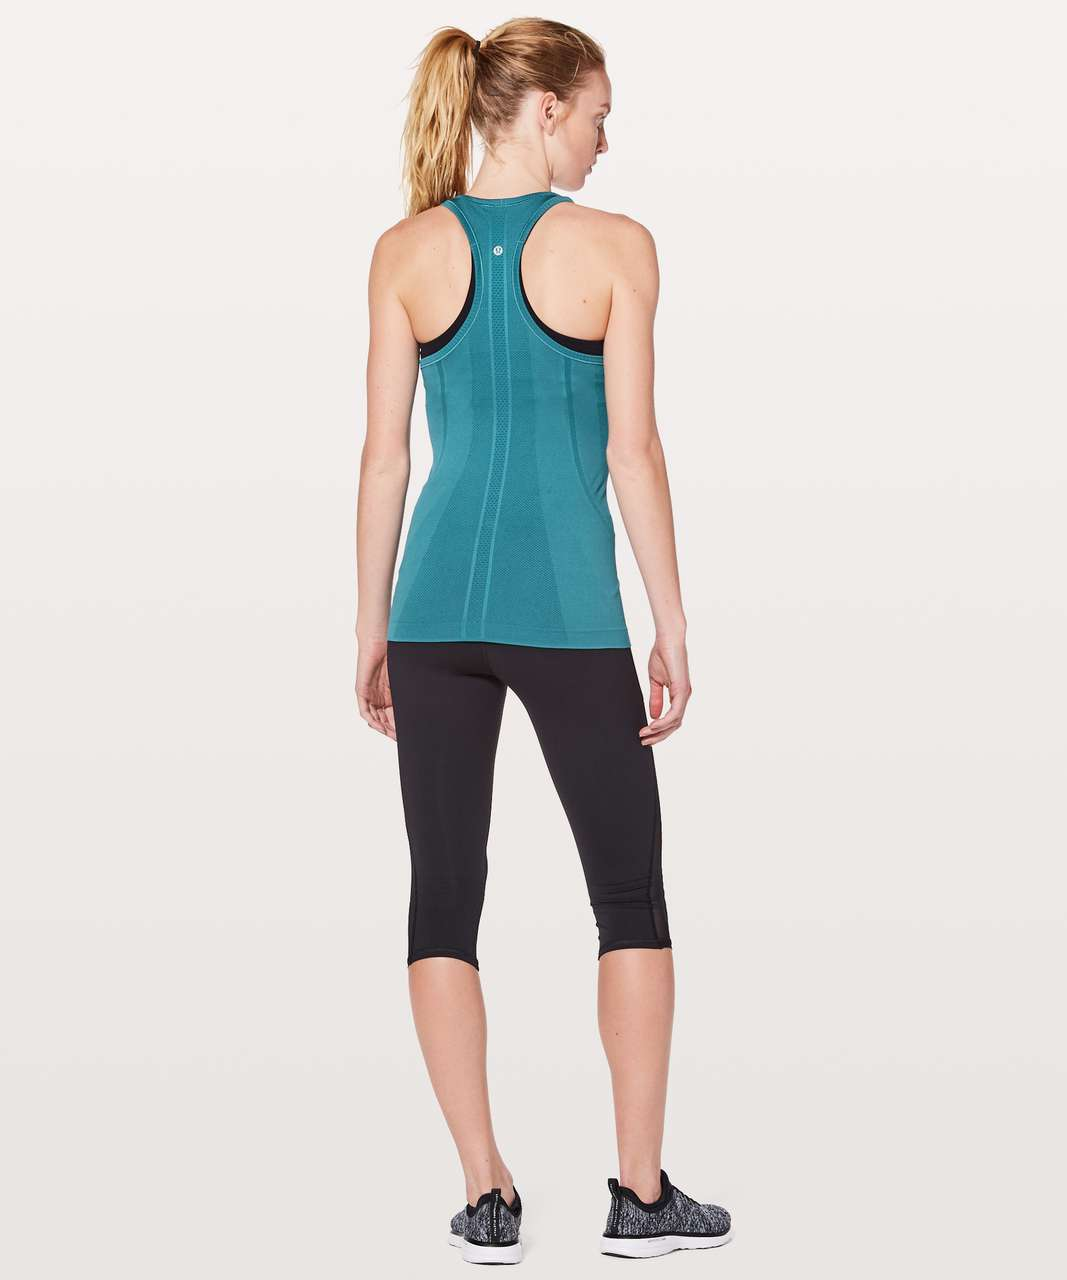 Lululemon Swiftly Tech Racerback - Pacific Teal / Pacific Teal